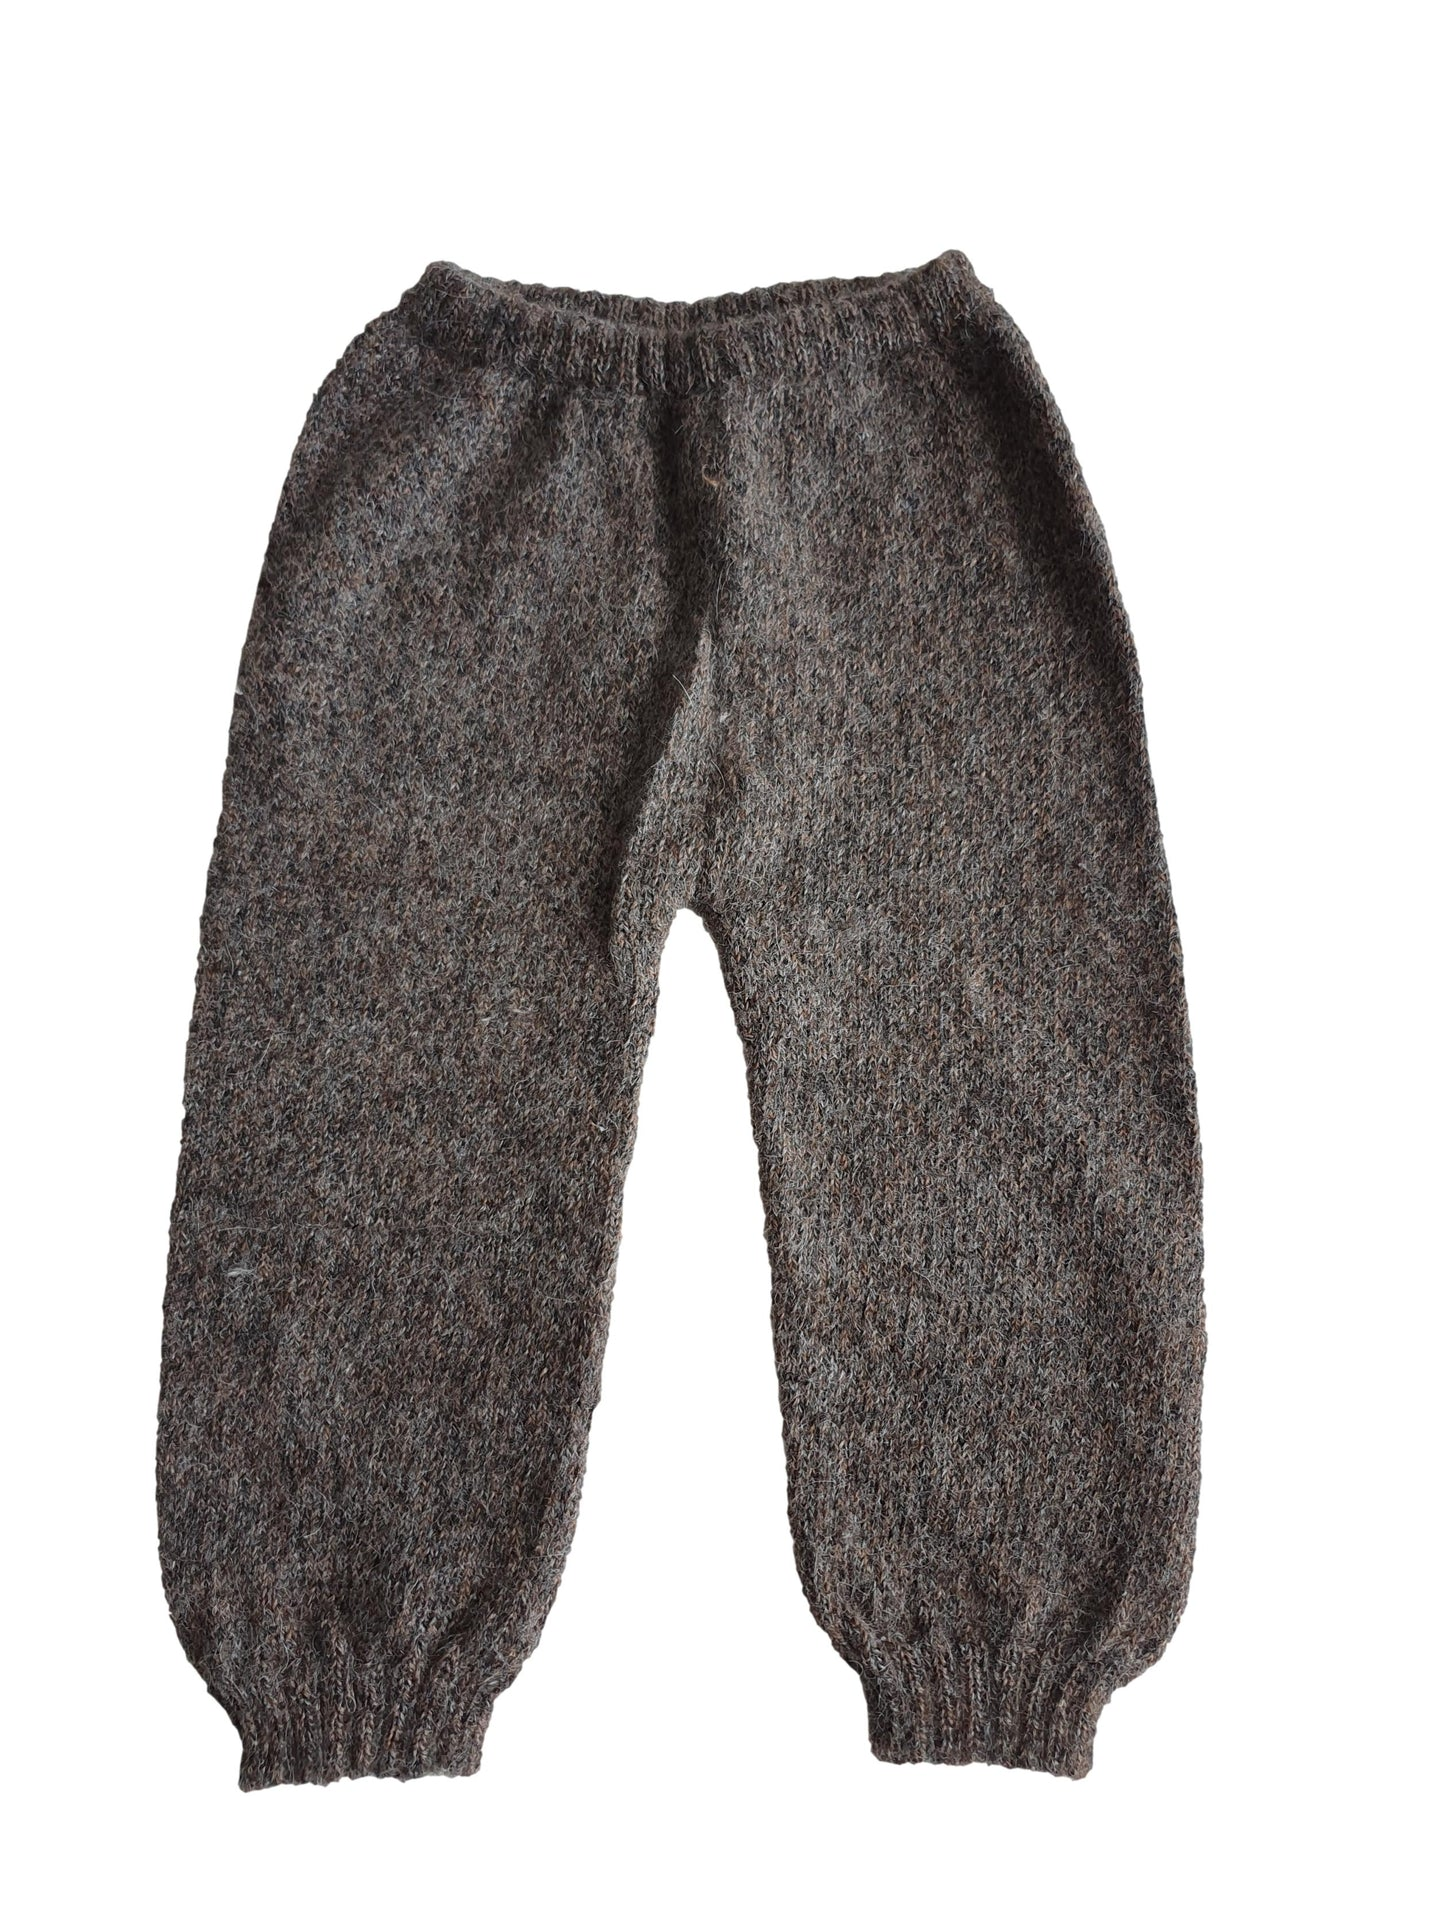 OEUF boy or girl knitted legging 6m